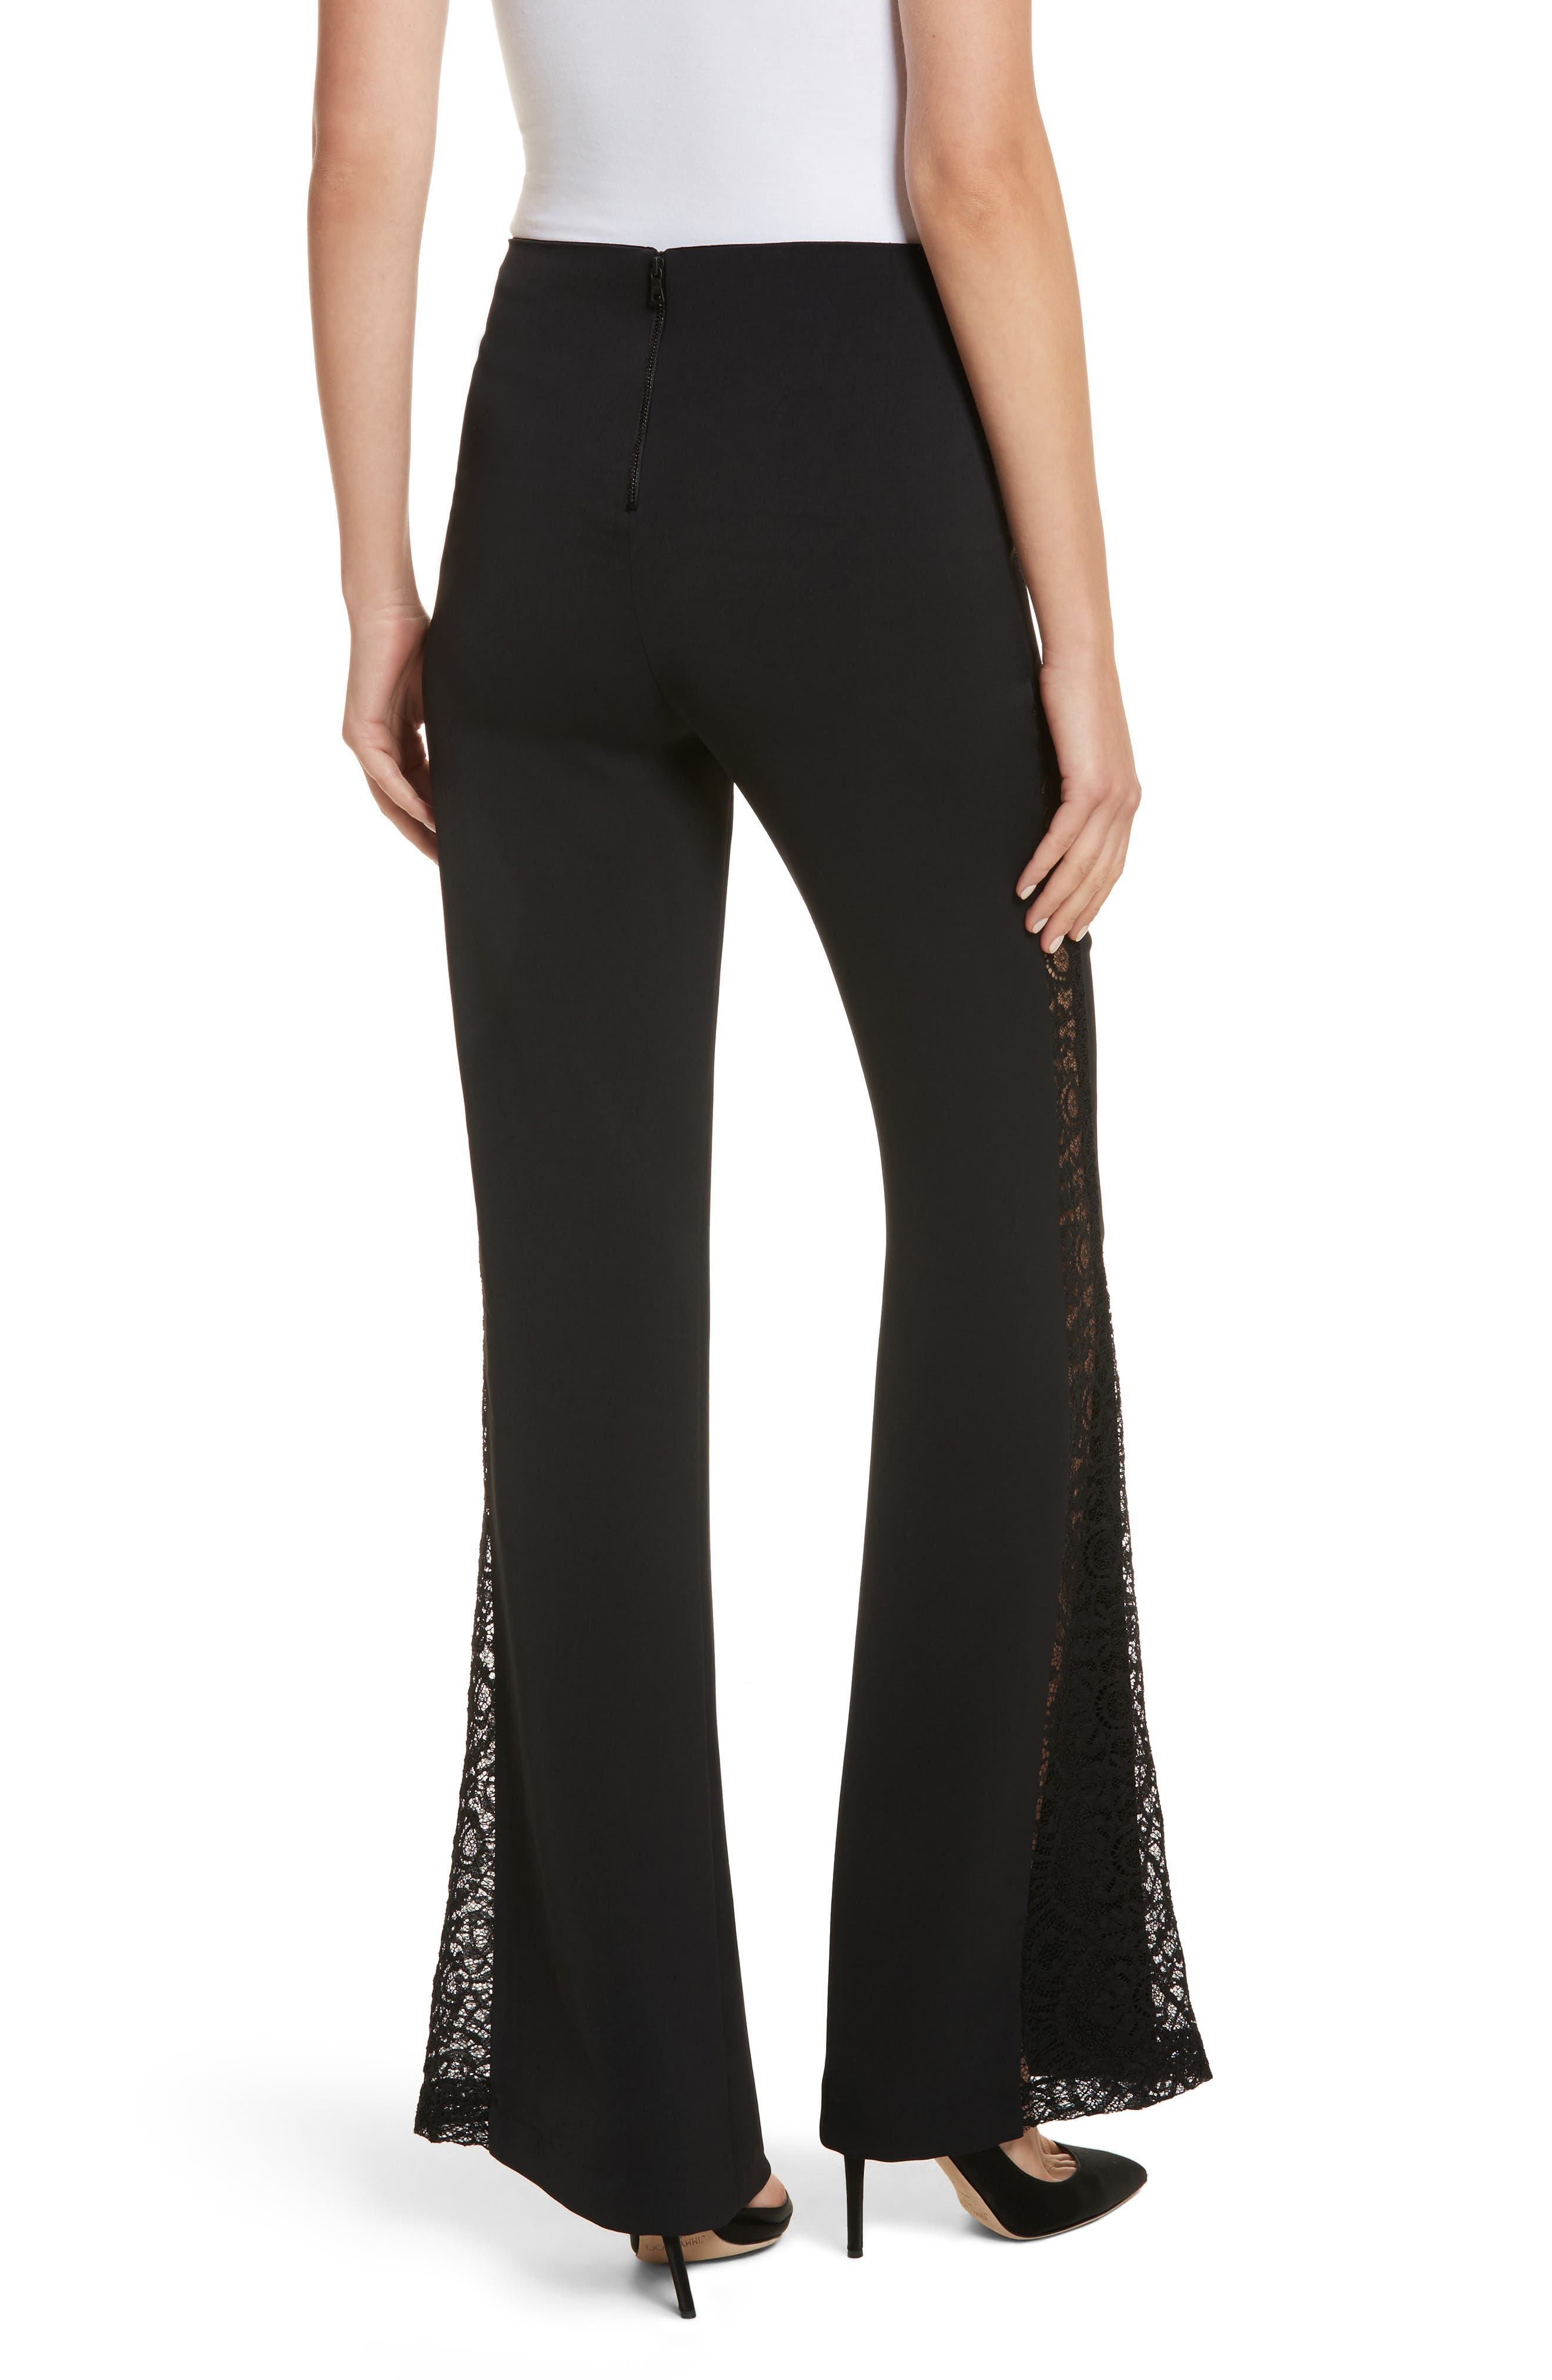 Mandy Side Panel Flared Pants,                             Alternate thumbnail 2, color,                             001